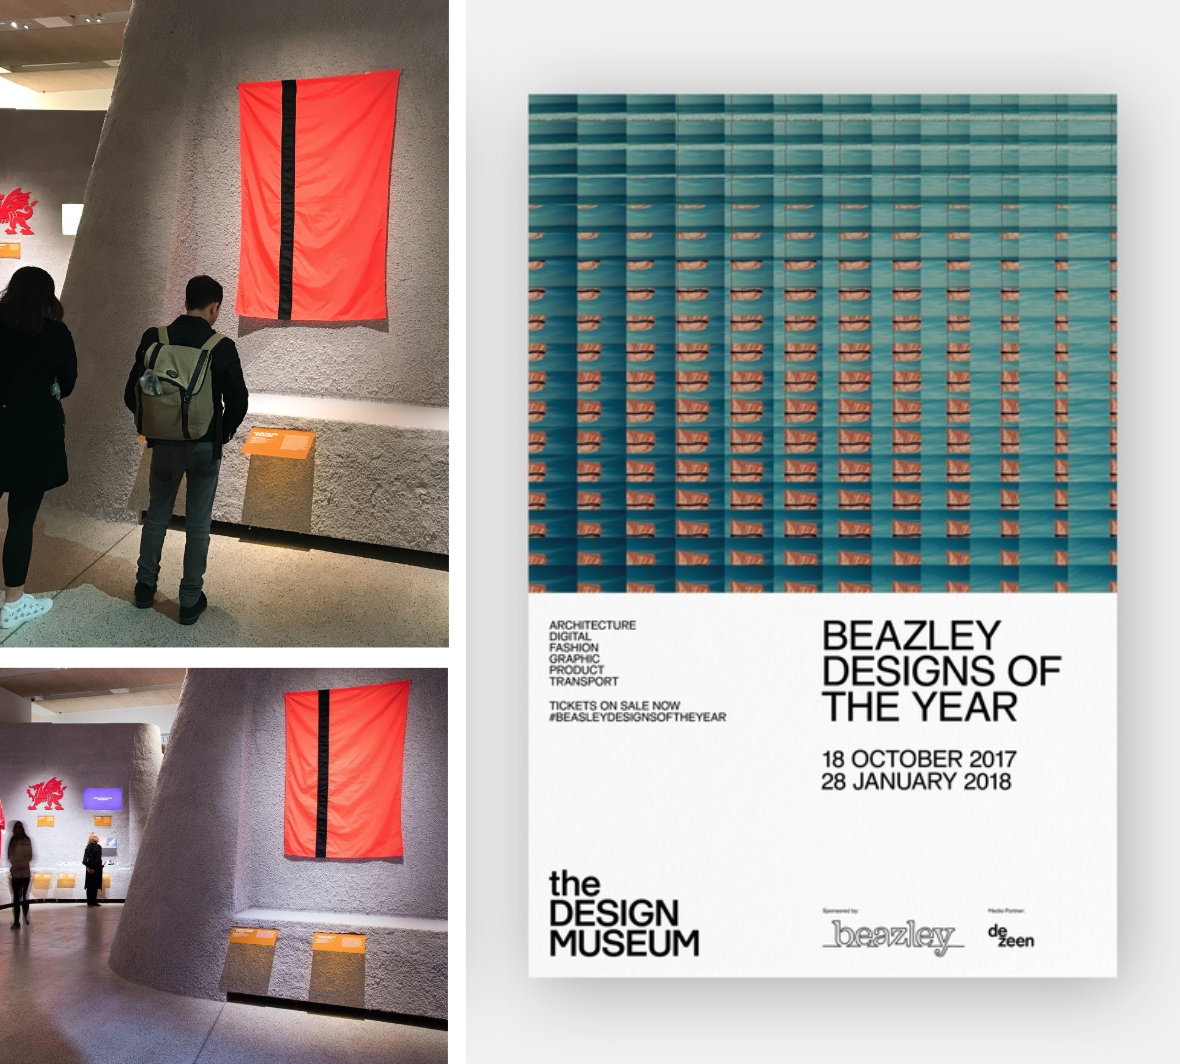 The Design Museum - London, UK